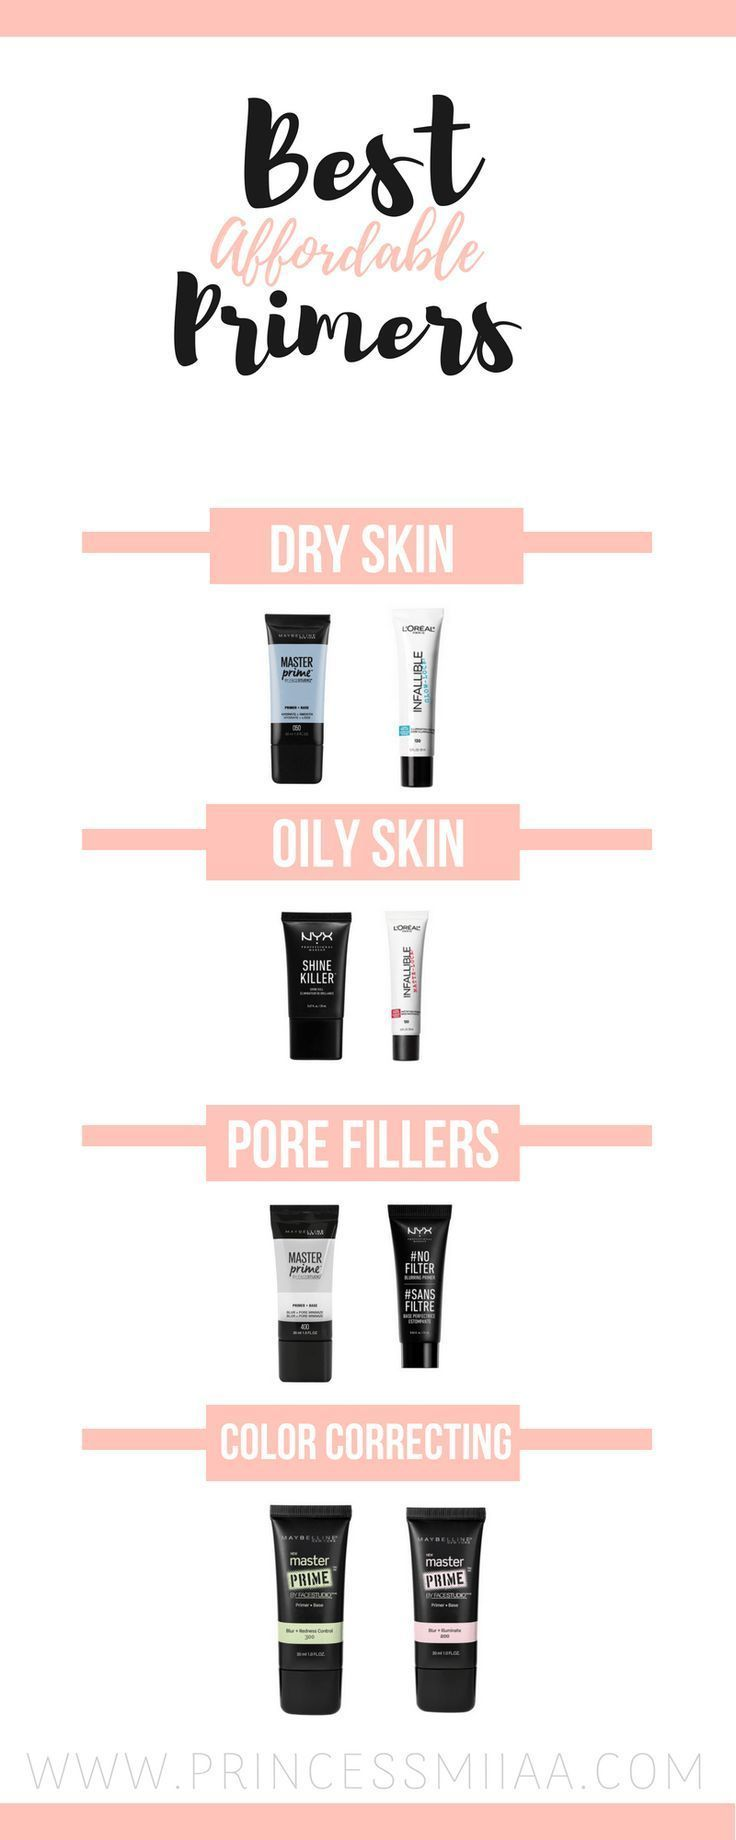 How To Choose The Correct Primer For Your Skin Best Drugstore Primer Drugstore Primer Primer For Dry Skin